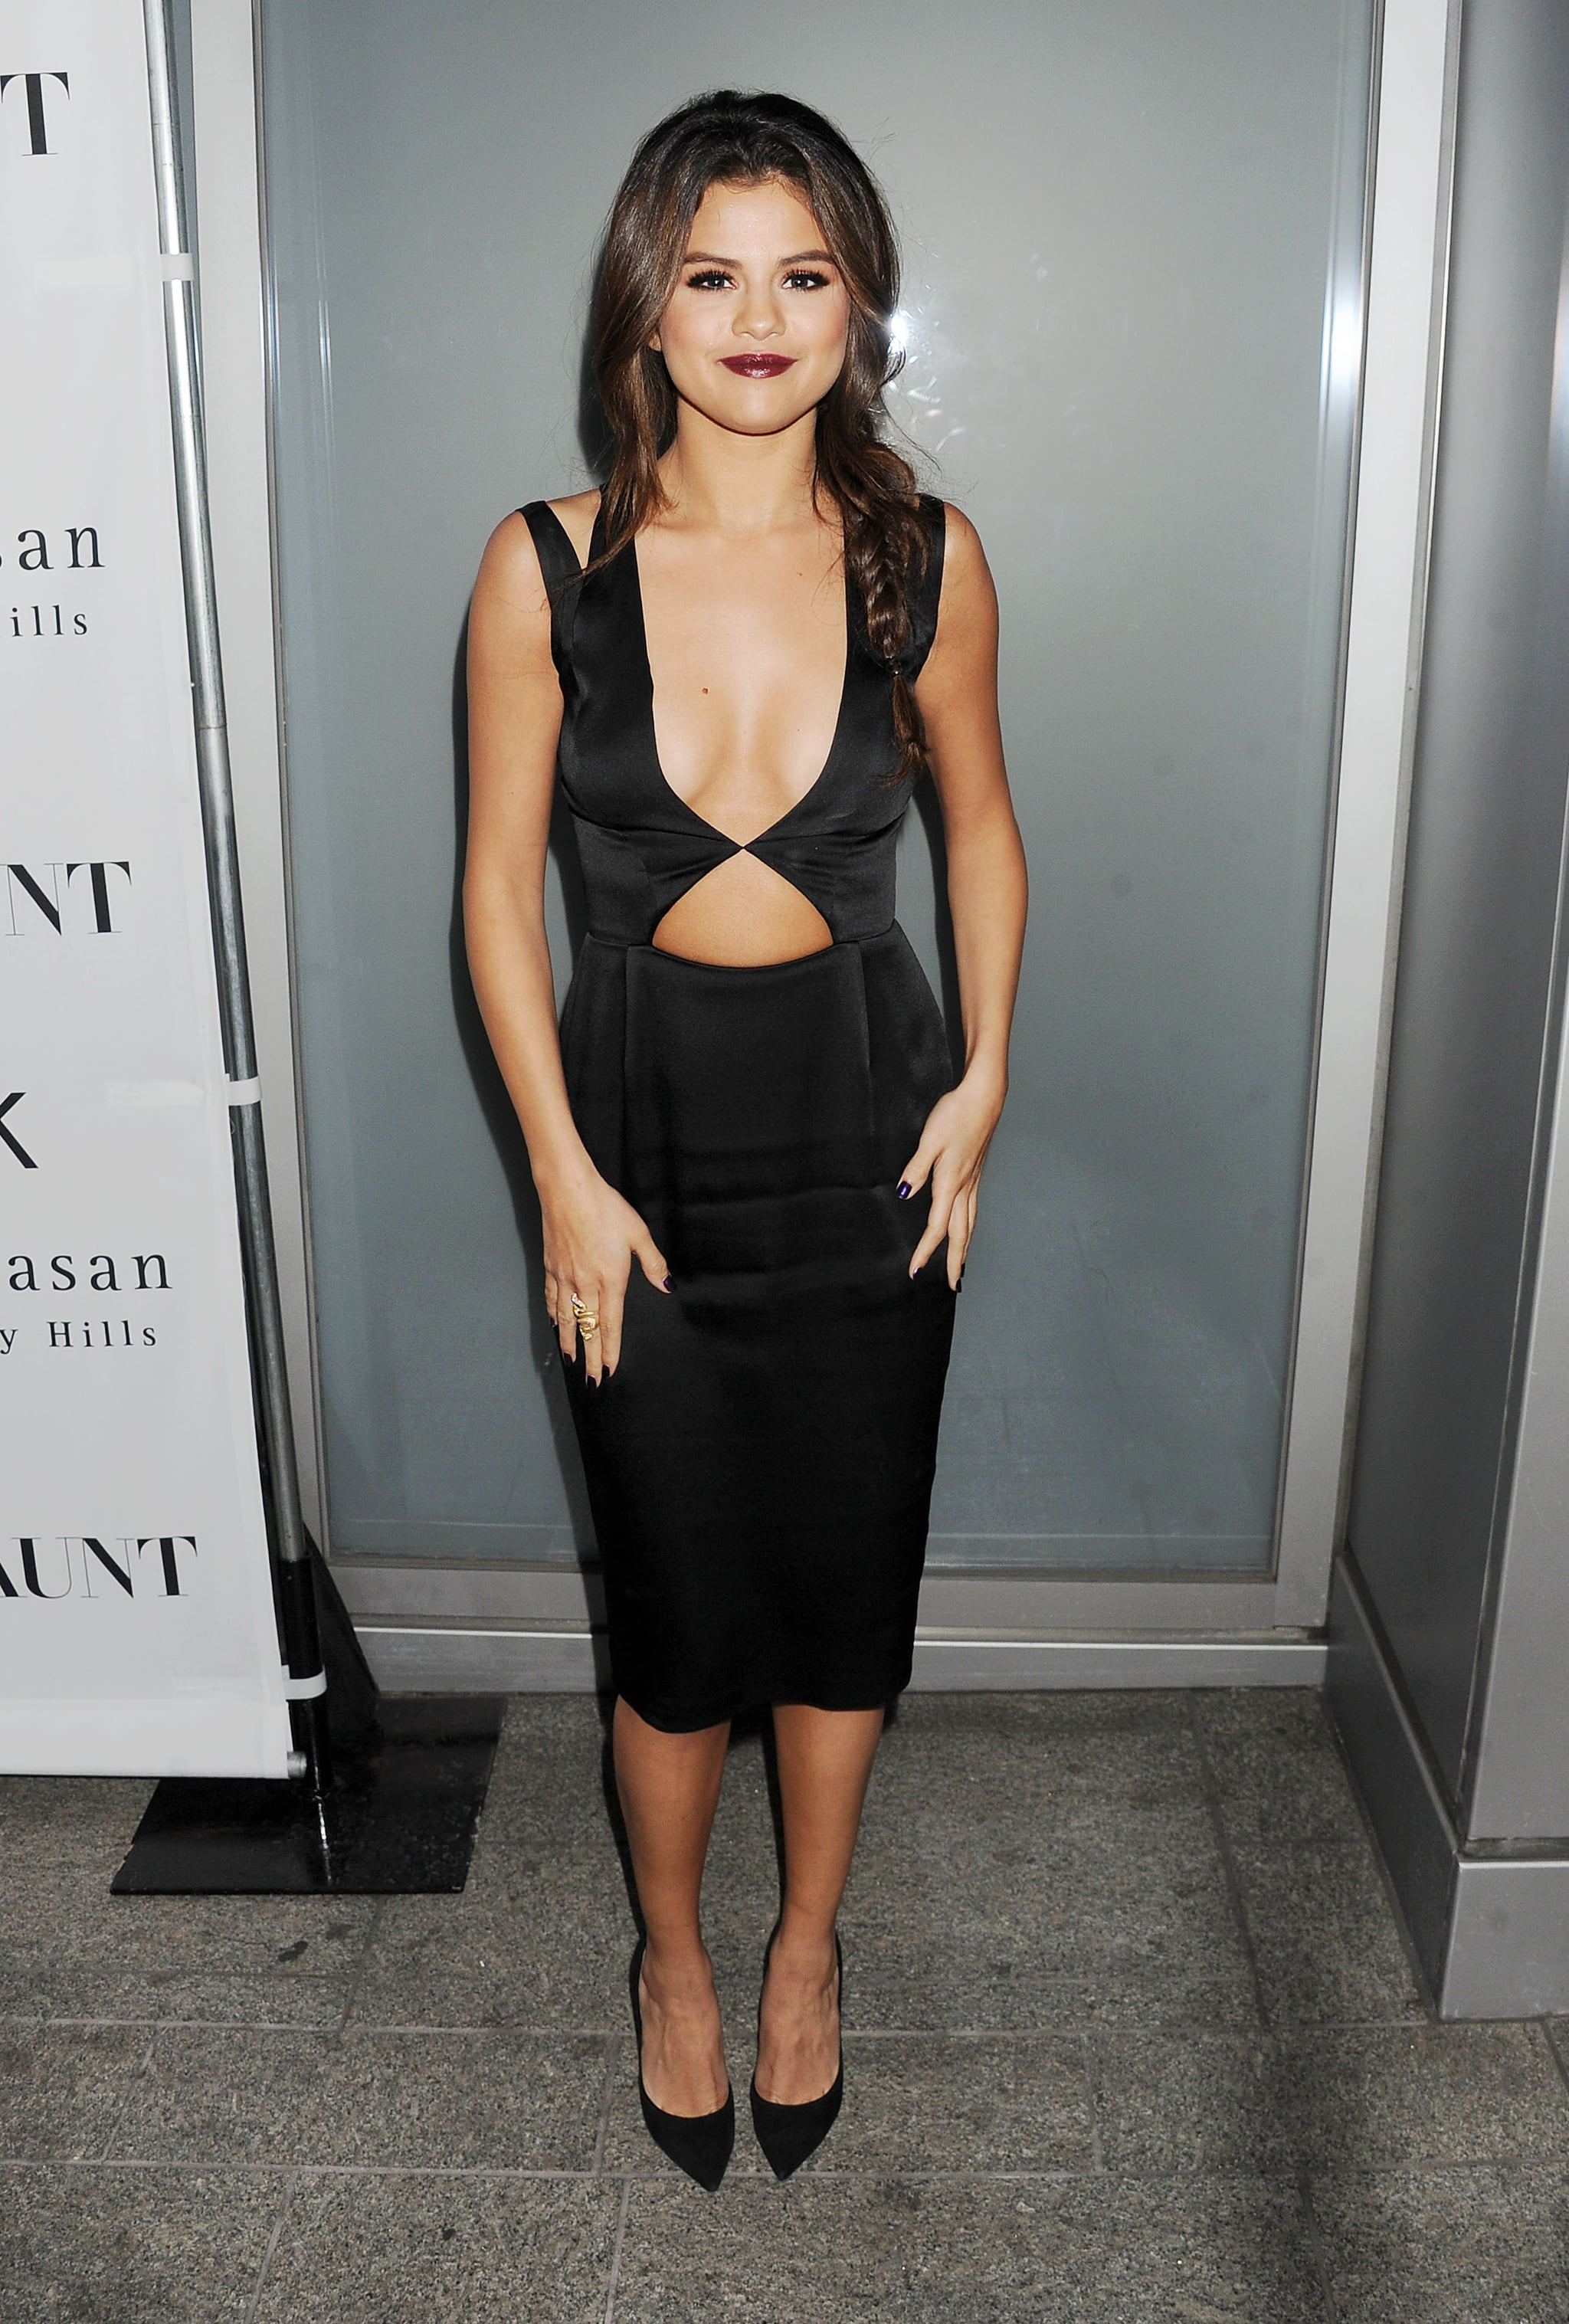 Selena Gomez sported a sexy black dress for the Flaunt magazine November issue launch party.